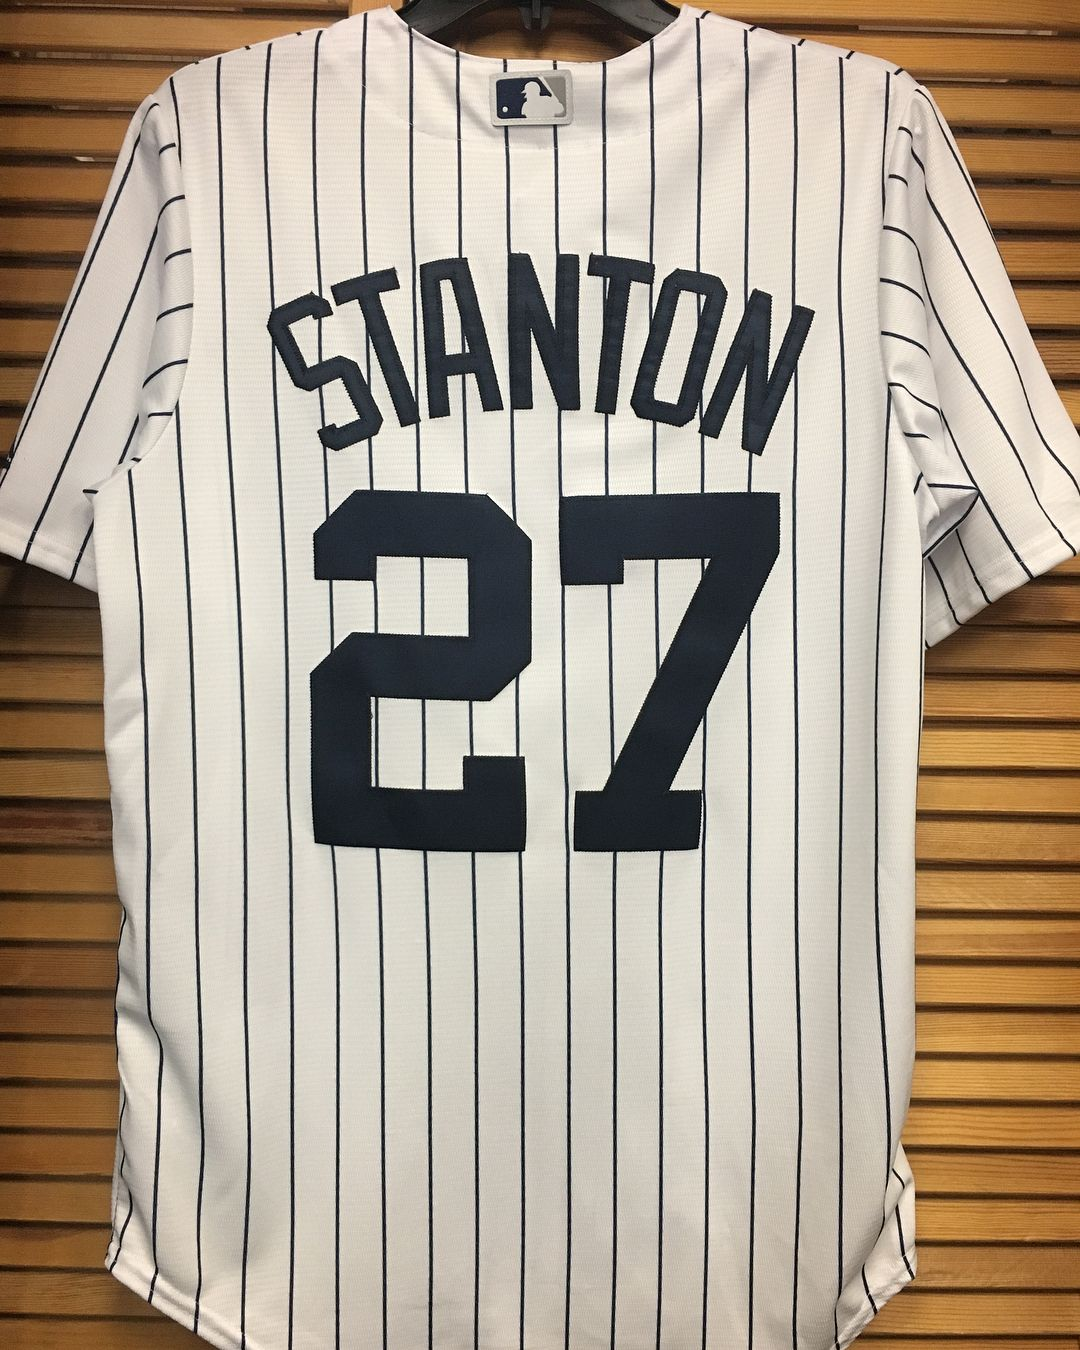 official photos 1dff6 fe3a9 New Majestic MLB New York Yankees Jersey ! Giancarlo Stanton ...